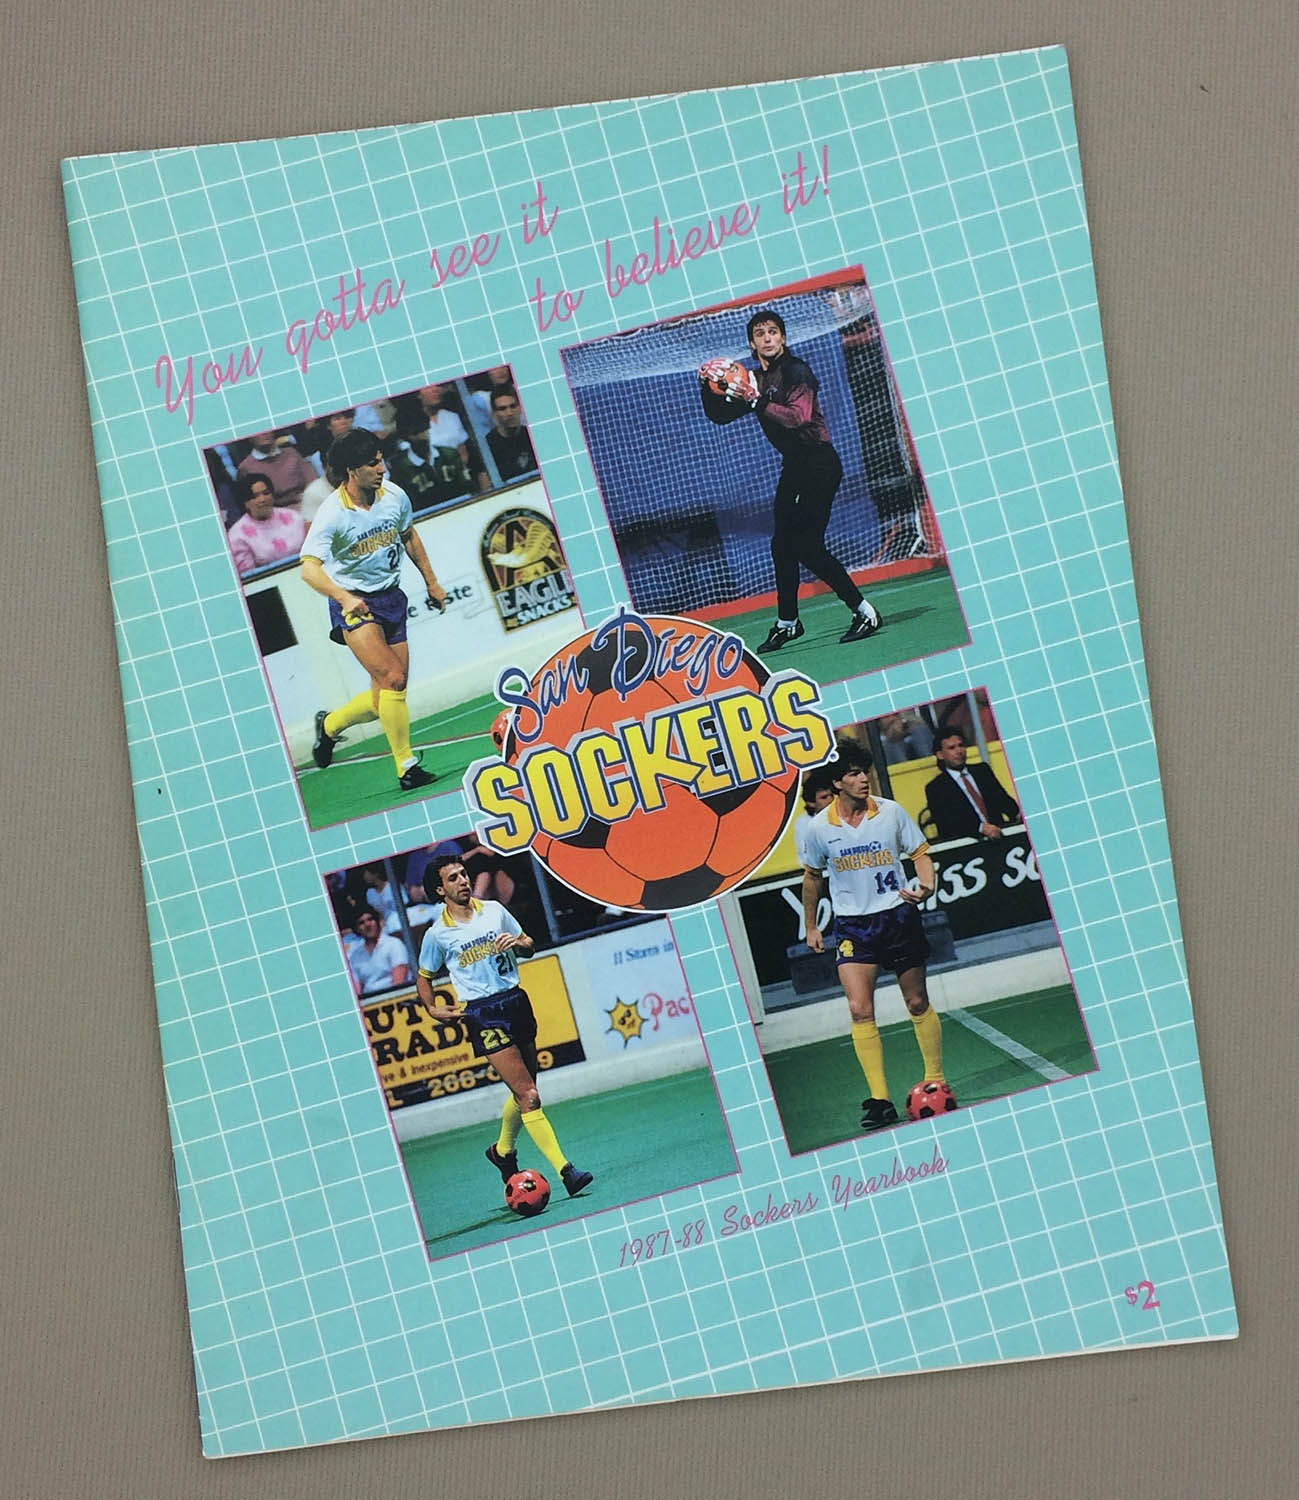 San Diego Sockers 1987-88 Yearbook